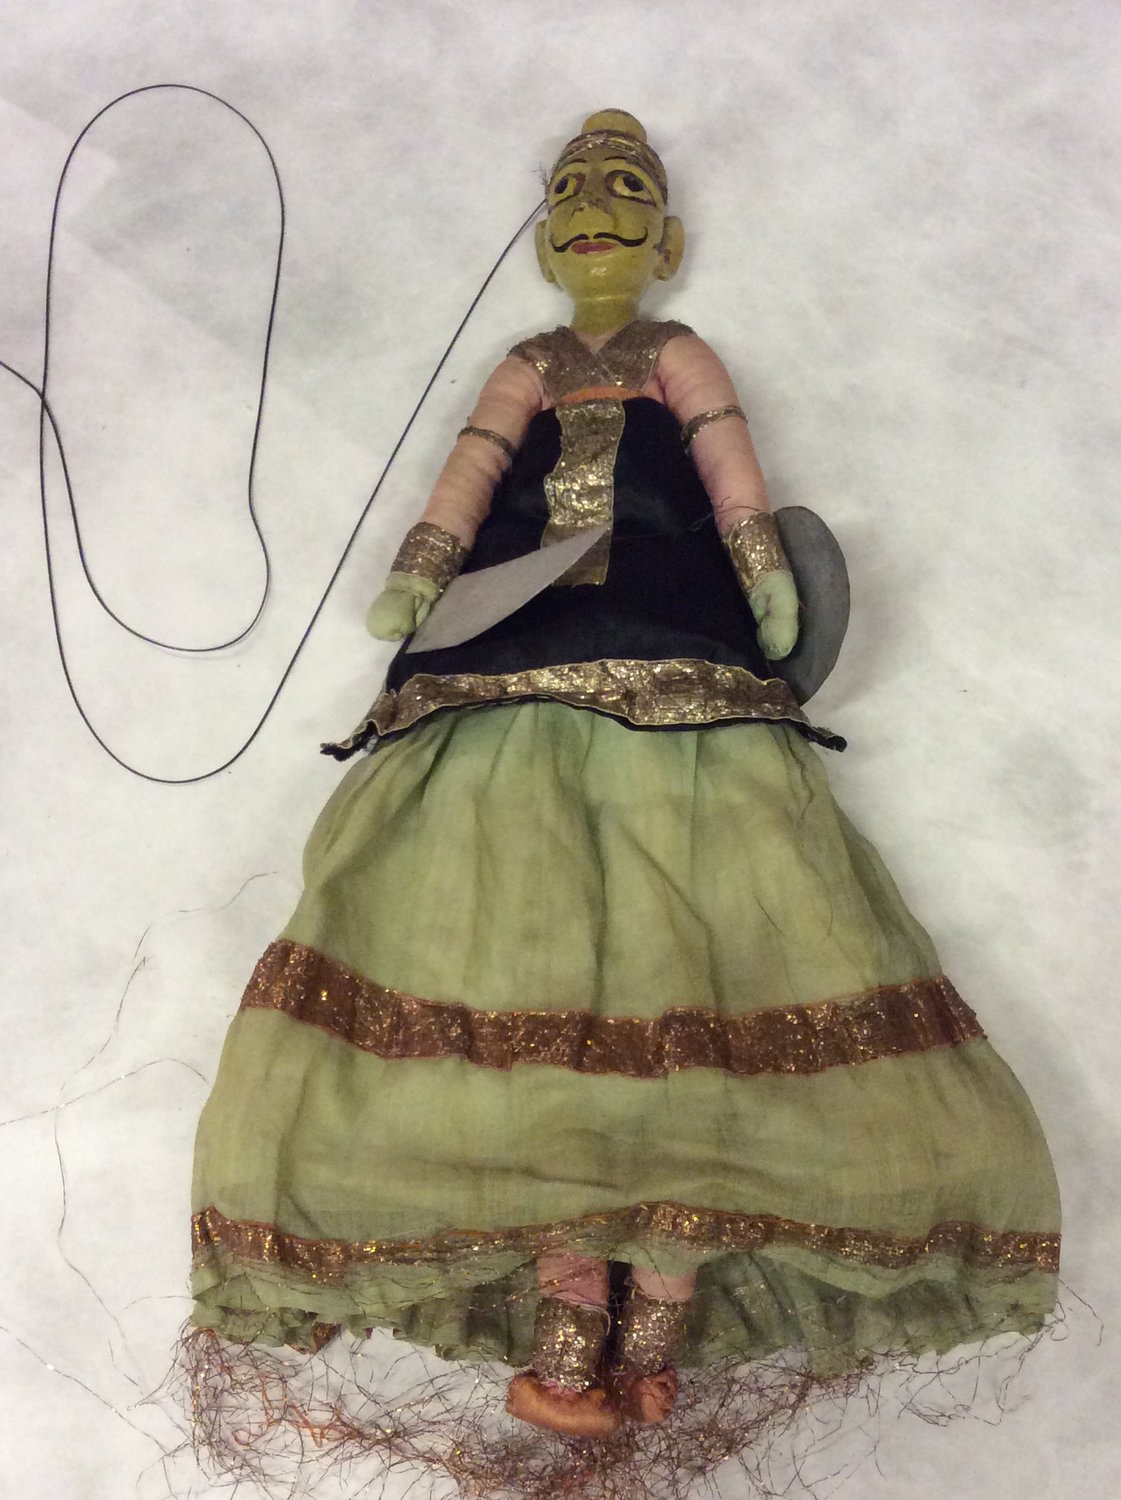 Un guerrier rajasthani, une marionnette à fils, <em>kathputli</em>, du Rajasthan, en Inde, hauteur: 52 <em>c</em>m. Colle<em>c</em>tion : Center for Puppetry Arts (Atlanta, Géorgie, États-Unis). Photo réproduite avec l'aimable autorisation de Center for Puppetry Arts